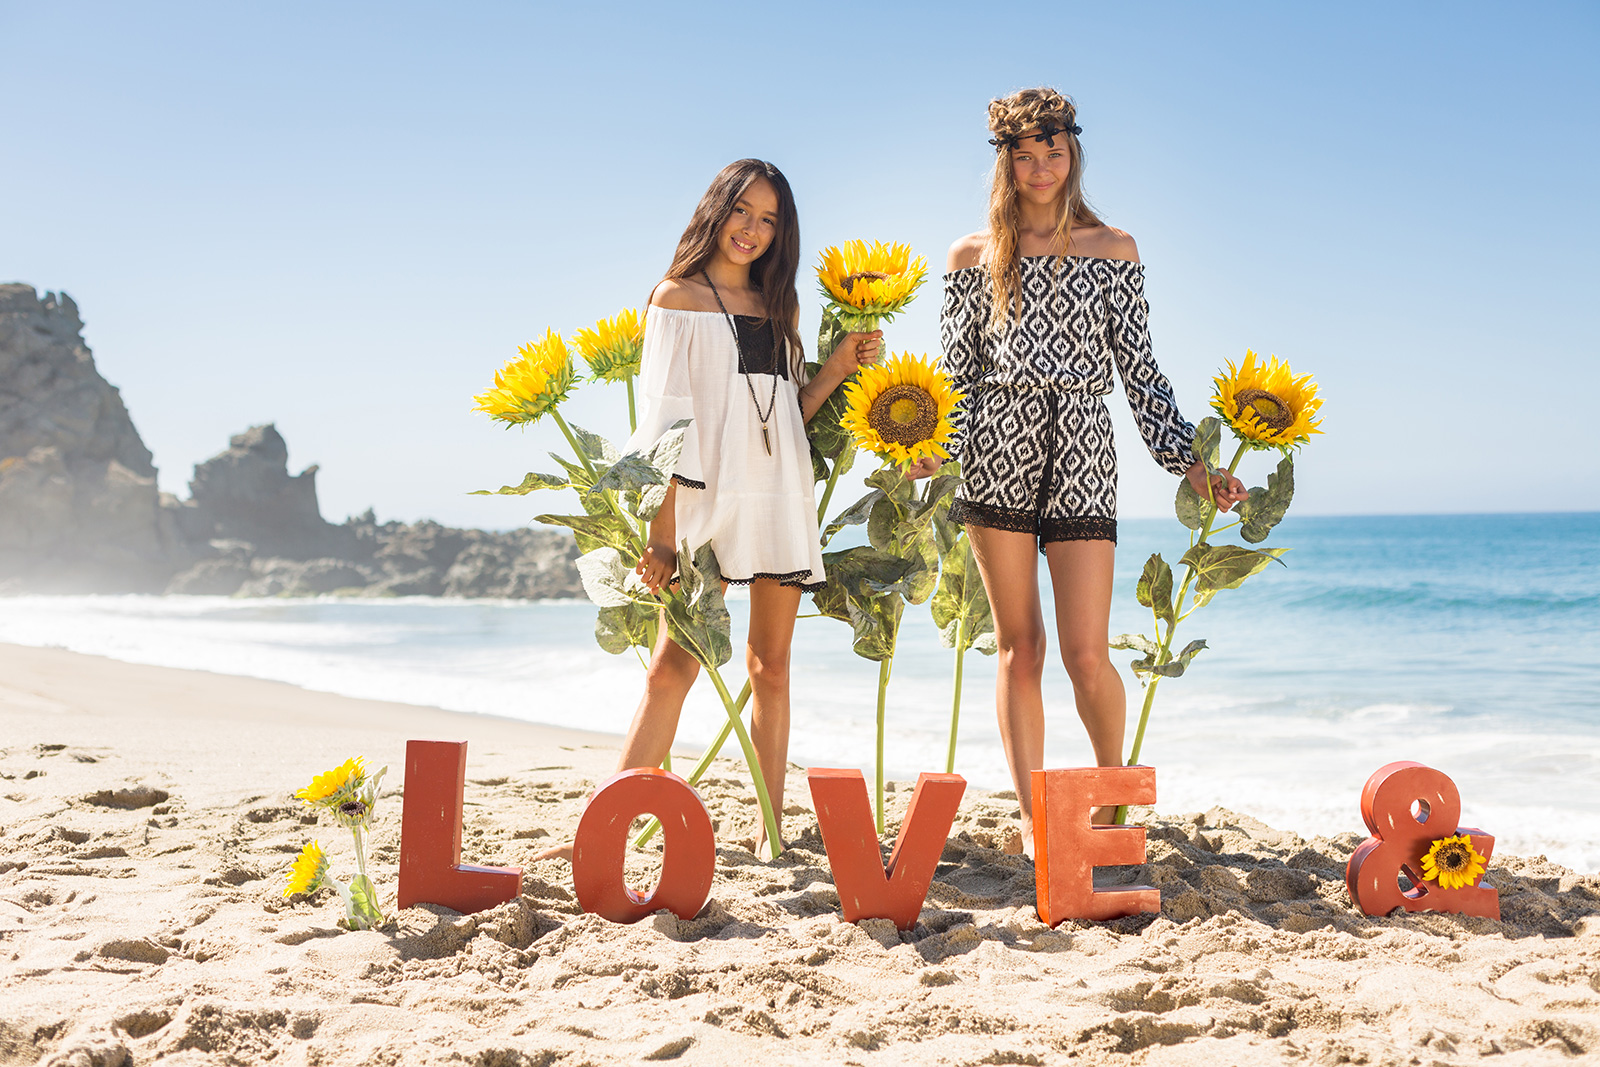 Love & Sunflowers, Lifestyle In Malibu